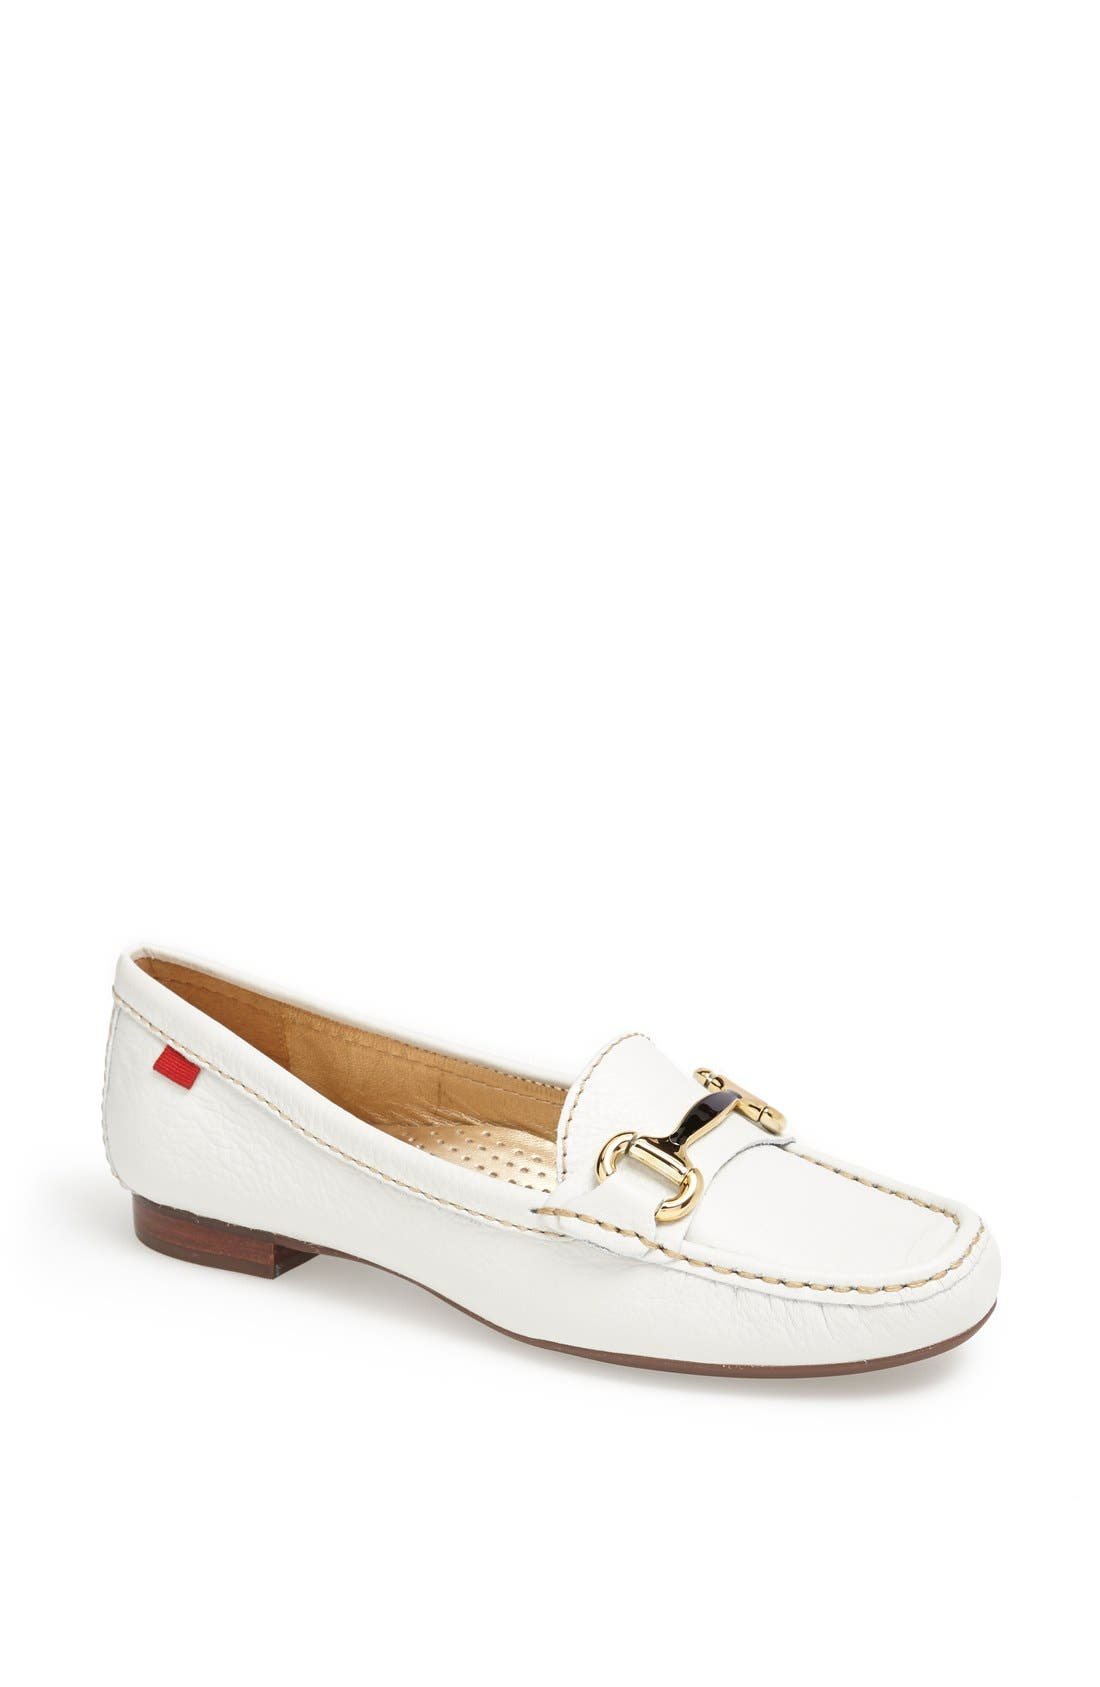 Main Image - Marc Joseph New York 'Grand St.' Loafer